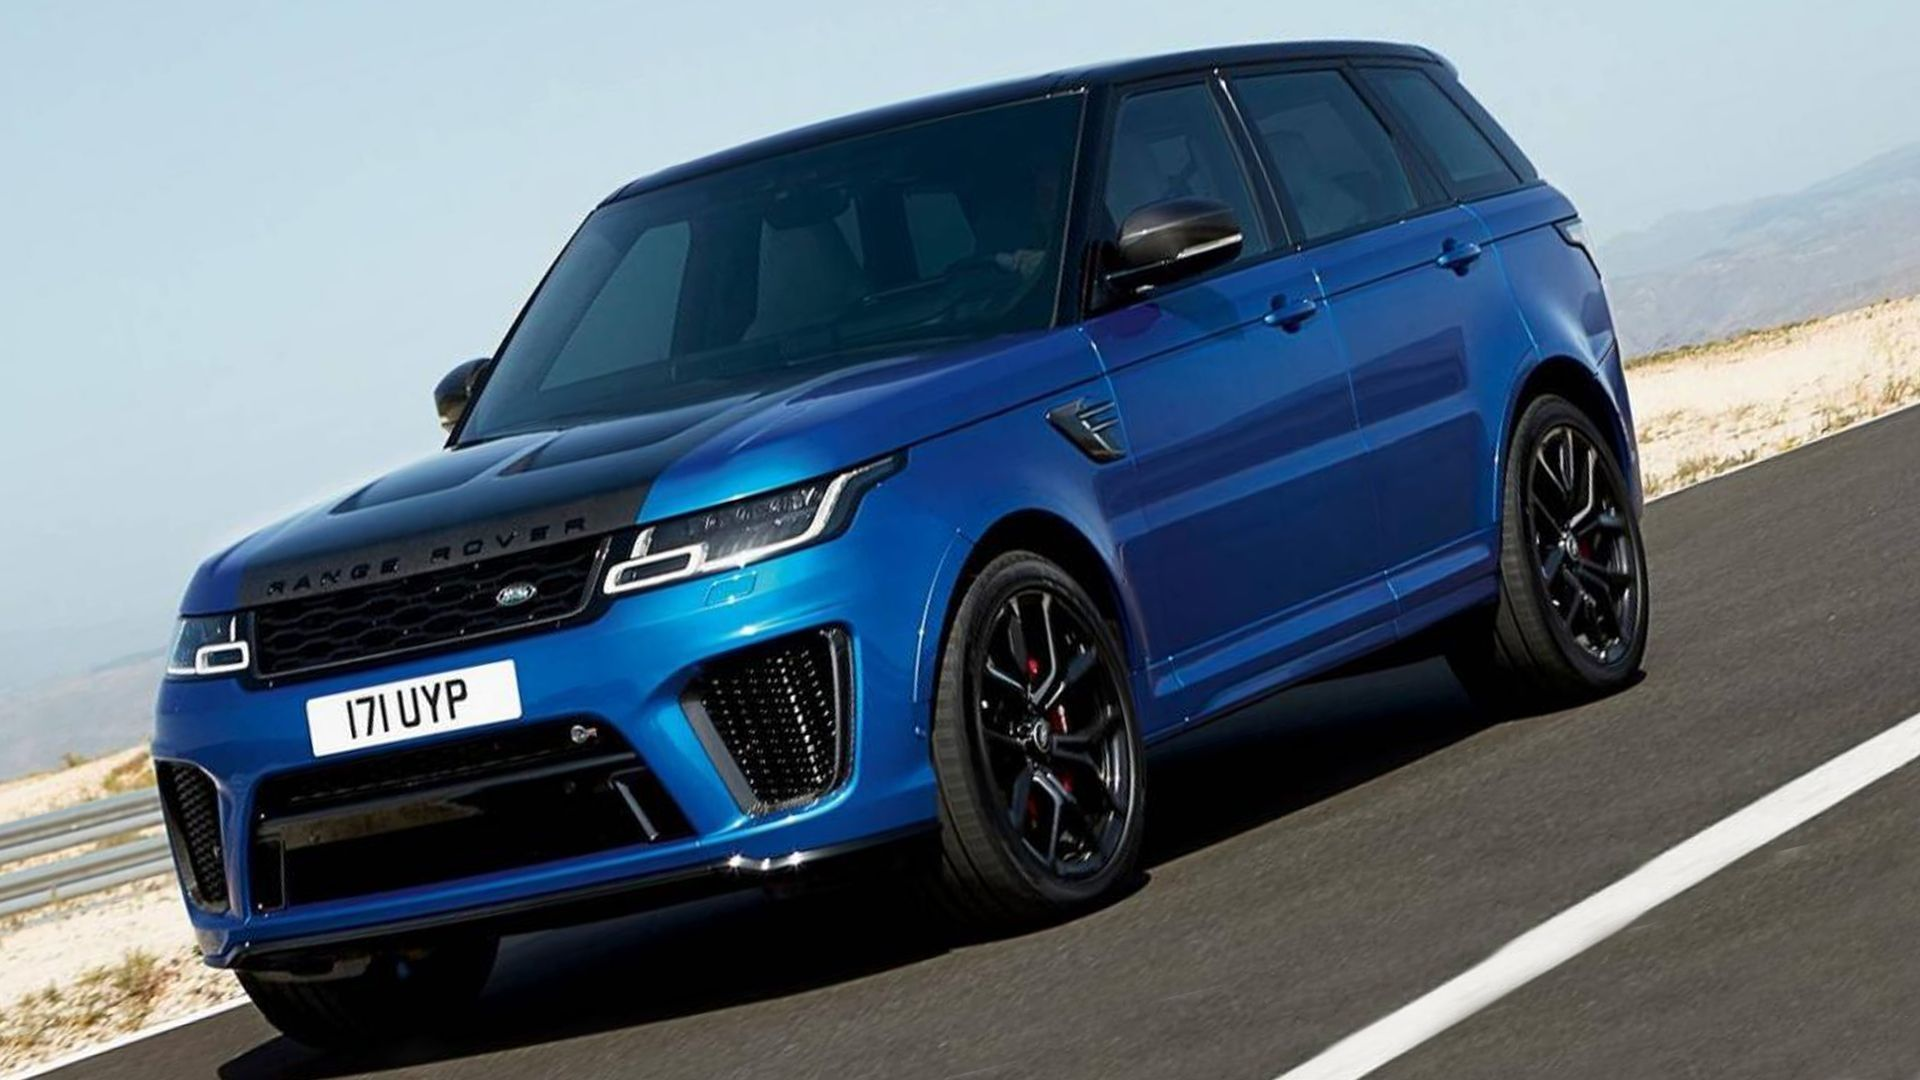 The 2019 Range Rover Sport First Drive Range rover